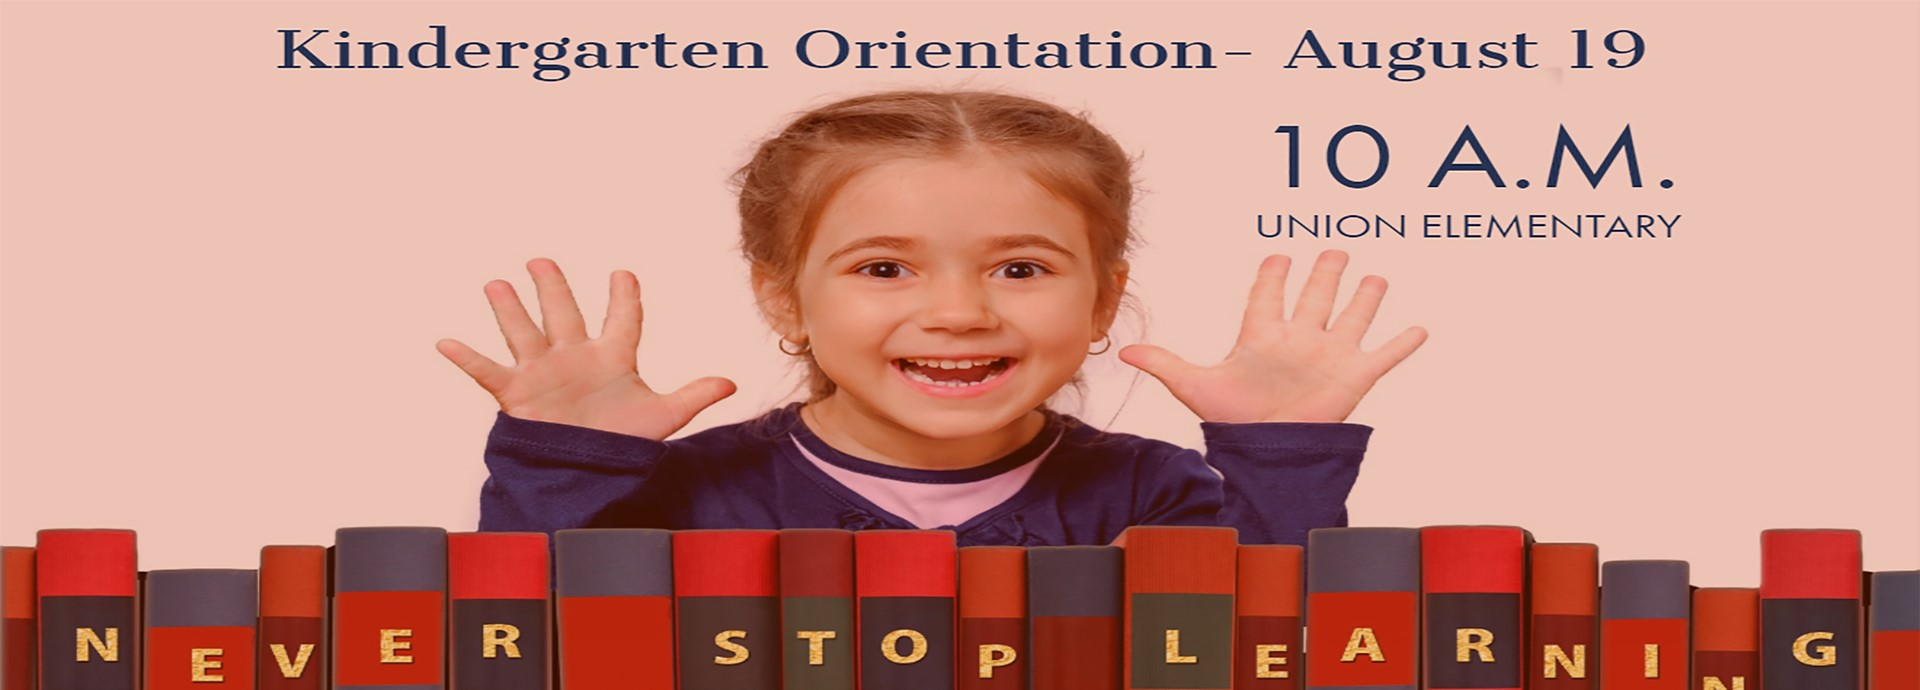 UNION KINDERGARTEN ORIENTATION: little girl with books, and information about kindergarten orientation, August 19 at 10 am at Union.